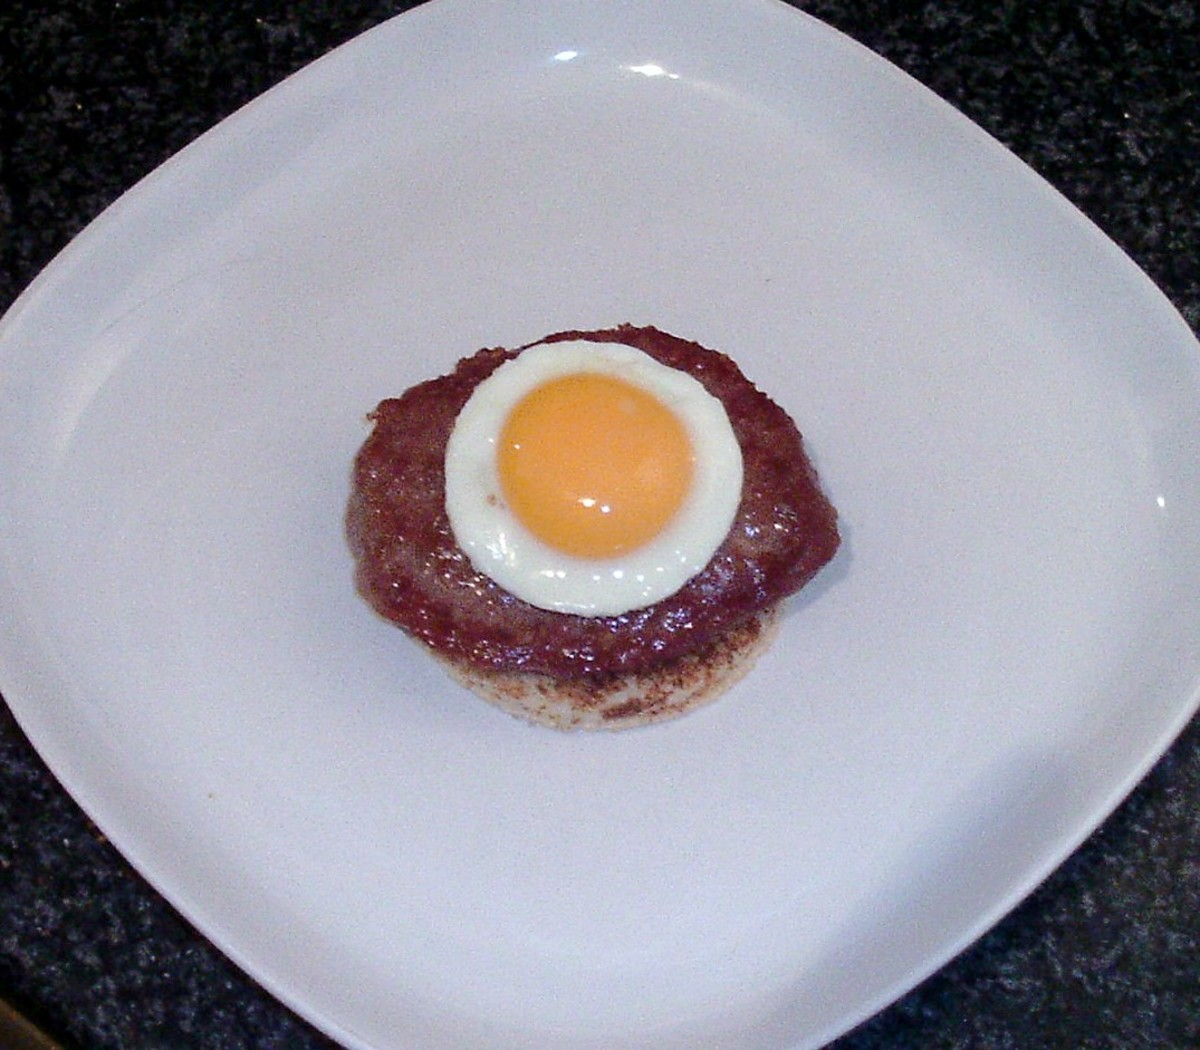 Fried egg circle is laid on top of burger